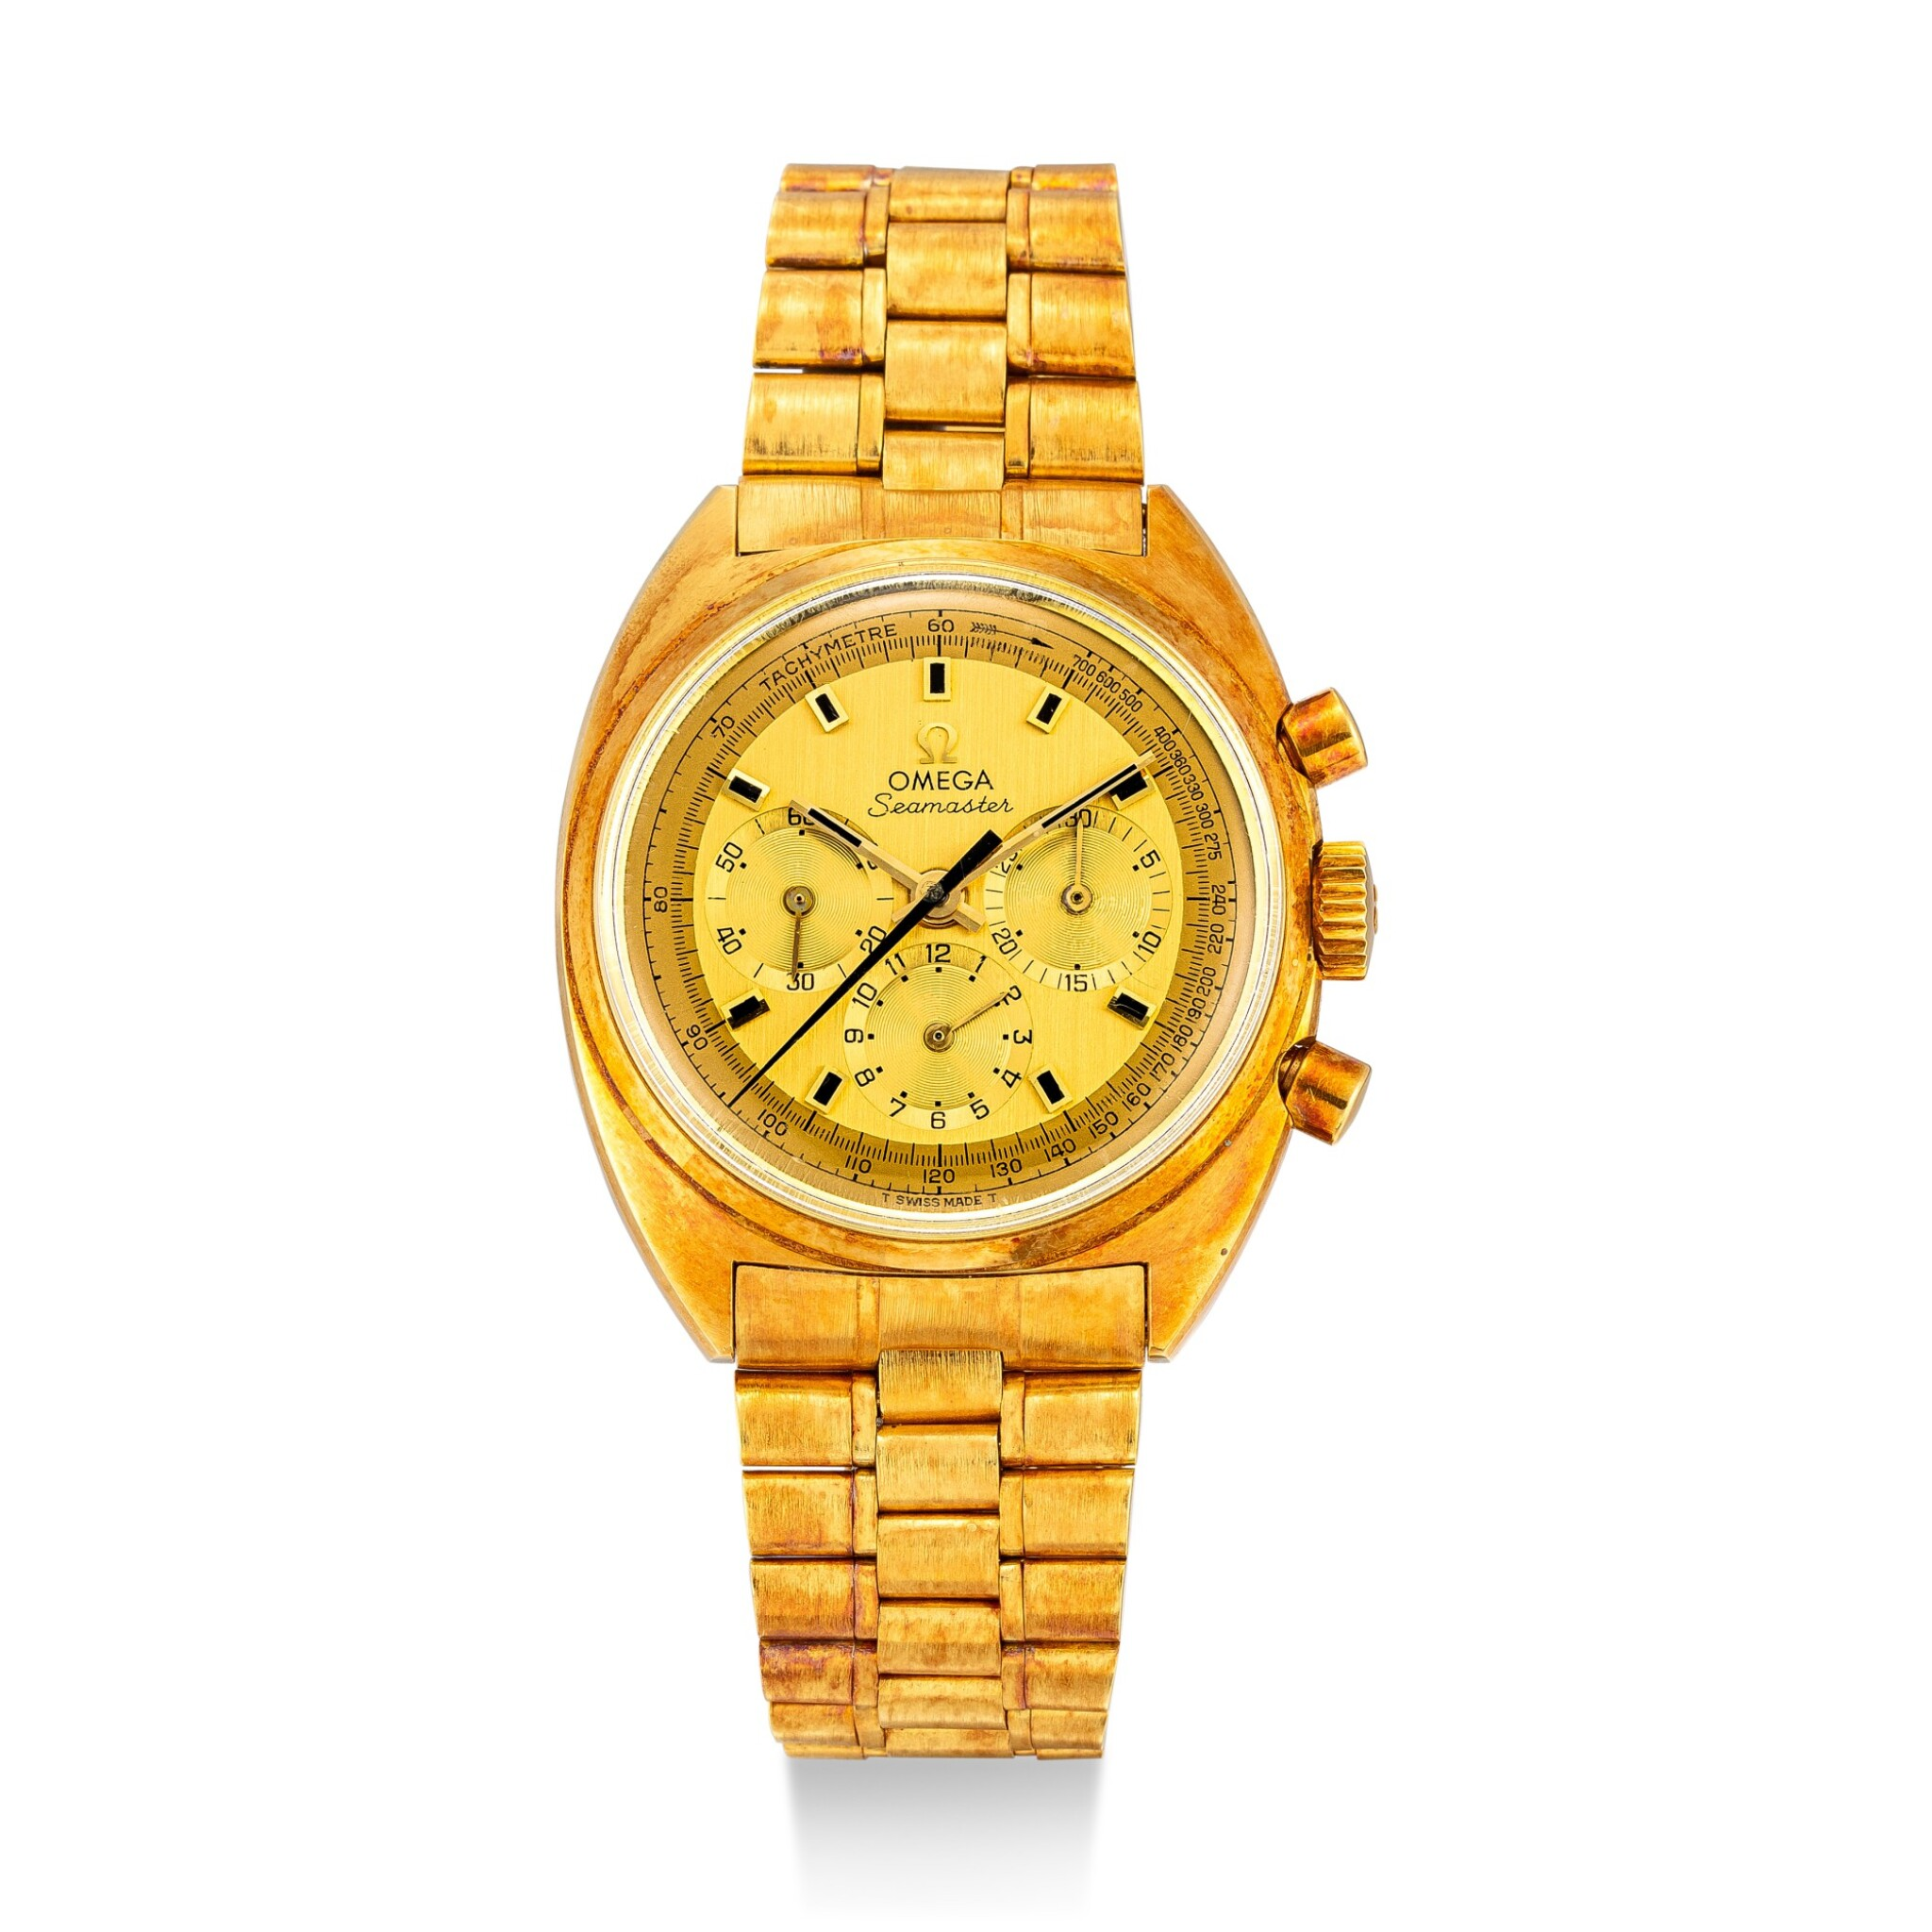 View full screen - View 1 of Lot 110. OMEGA | SEAMASTER, REFERENCE 145.006 A YELLOW GOLD CHRONOGRAPH WRISTWATCH WITH BRACELET, CIRCA 1970.